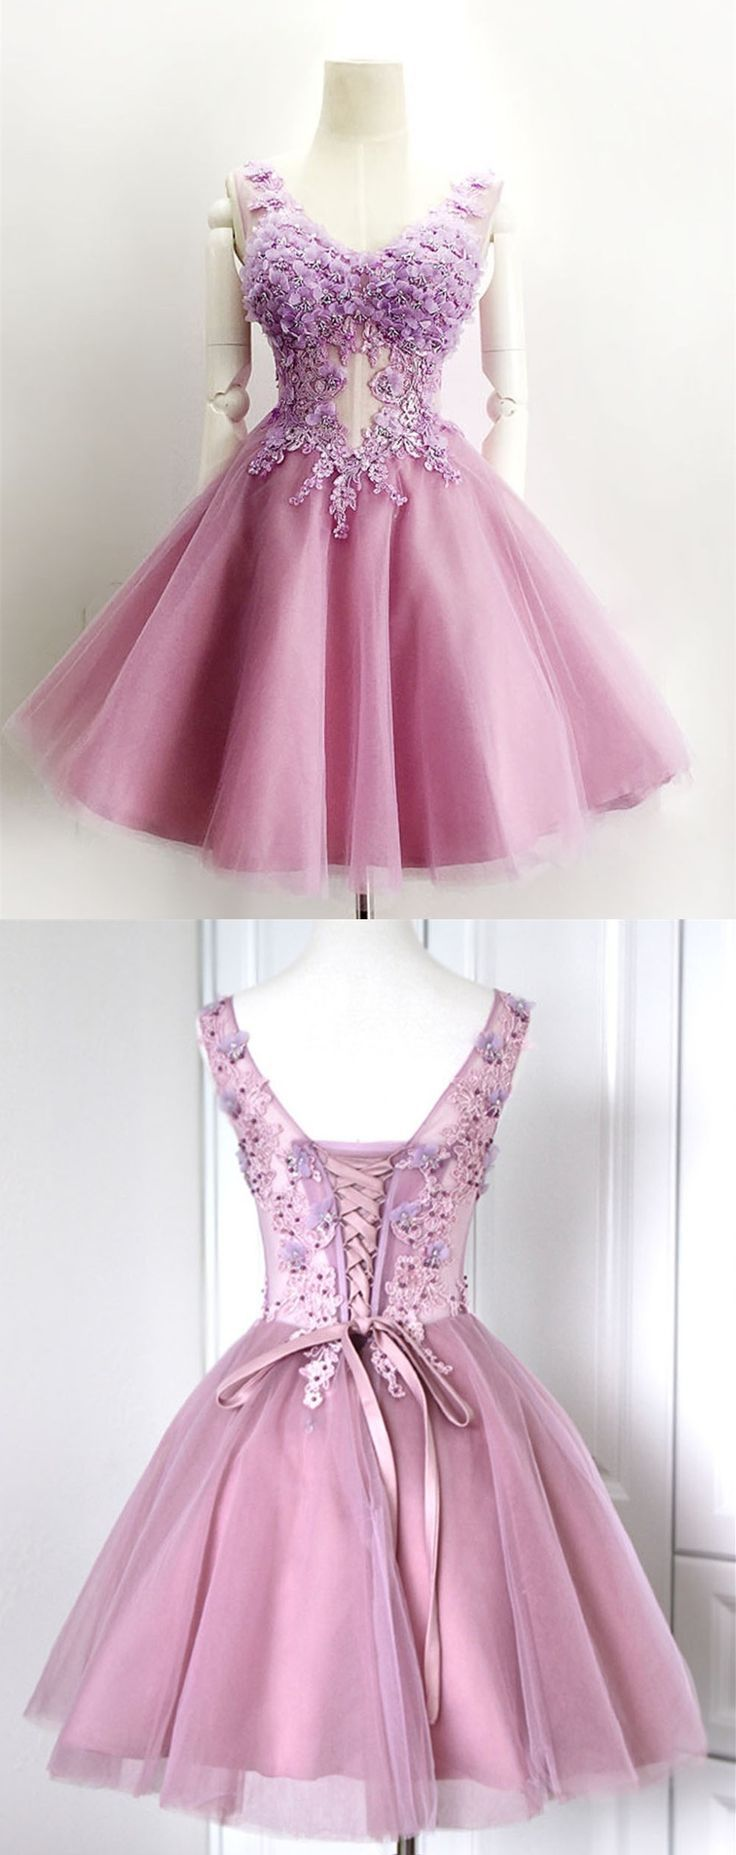 Ball gown homecoming dressvneck short homecoming gownpurple prom